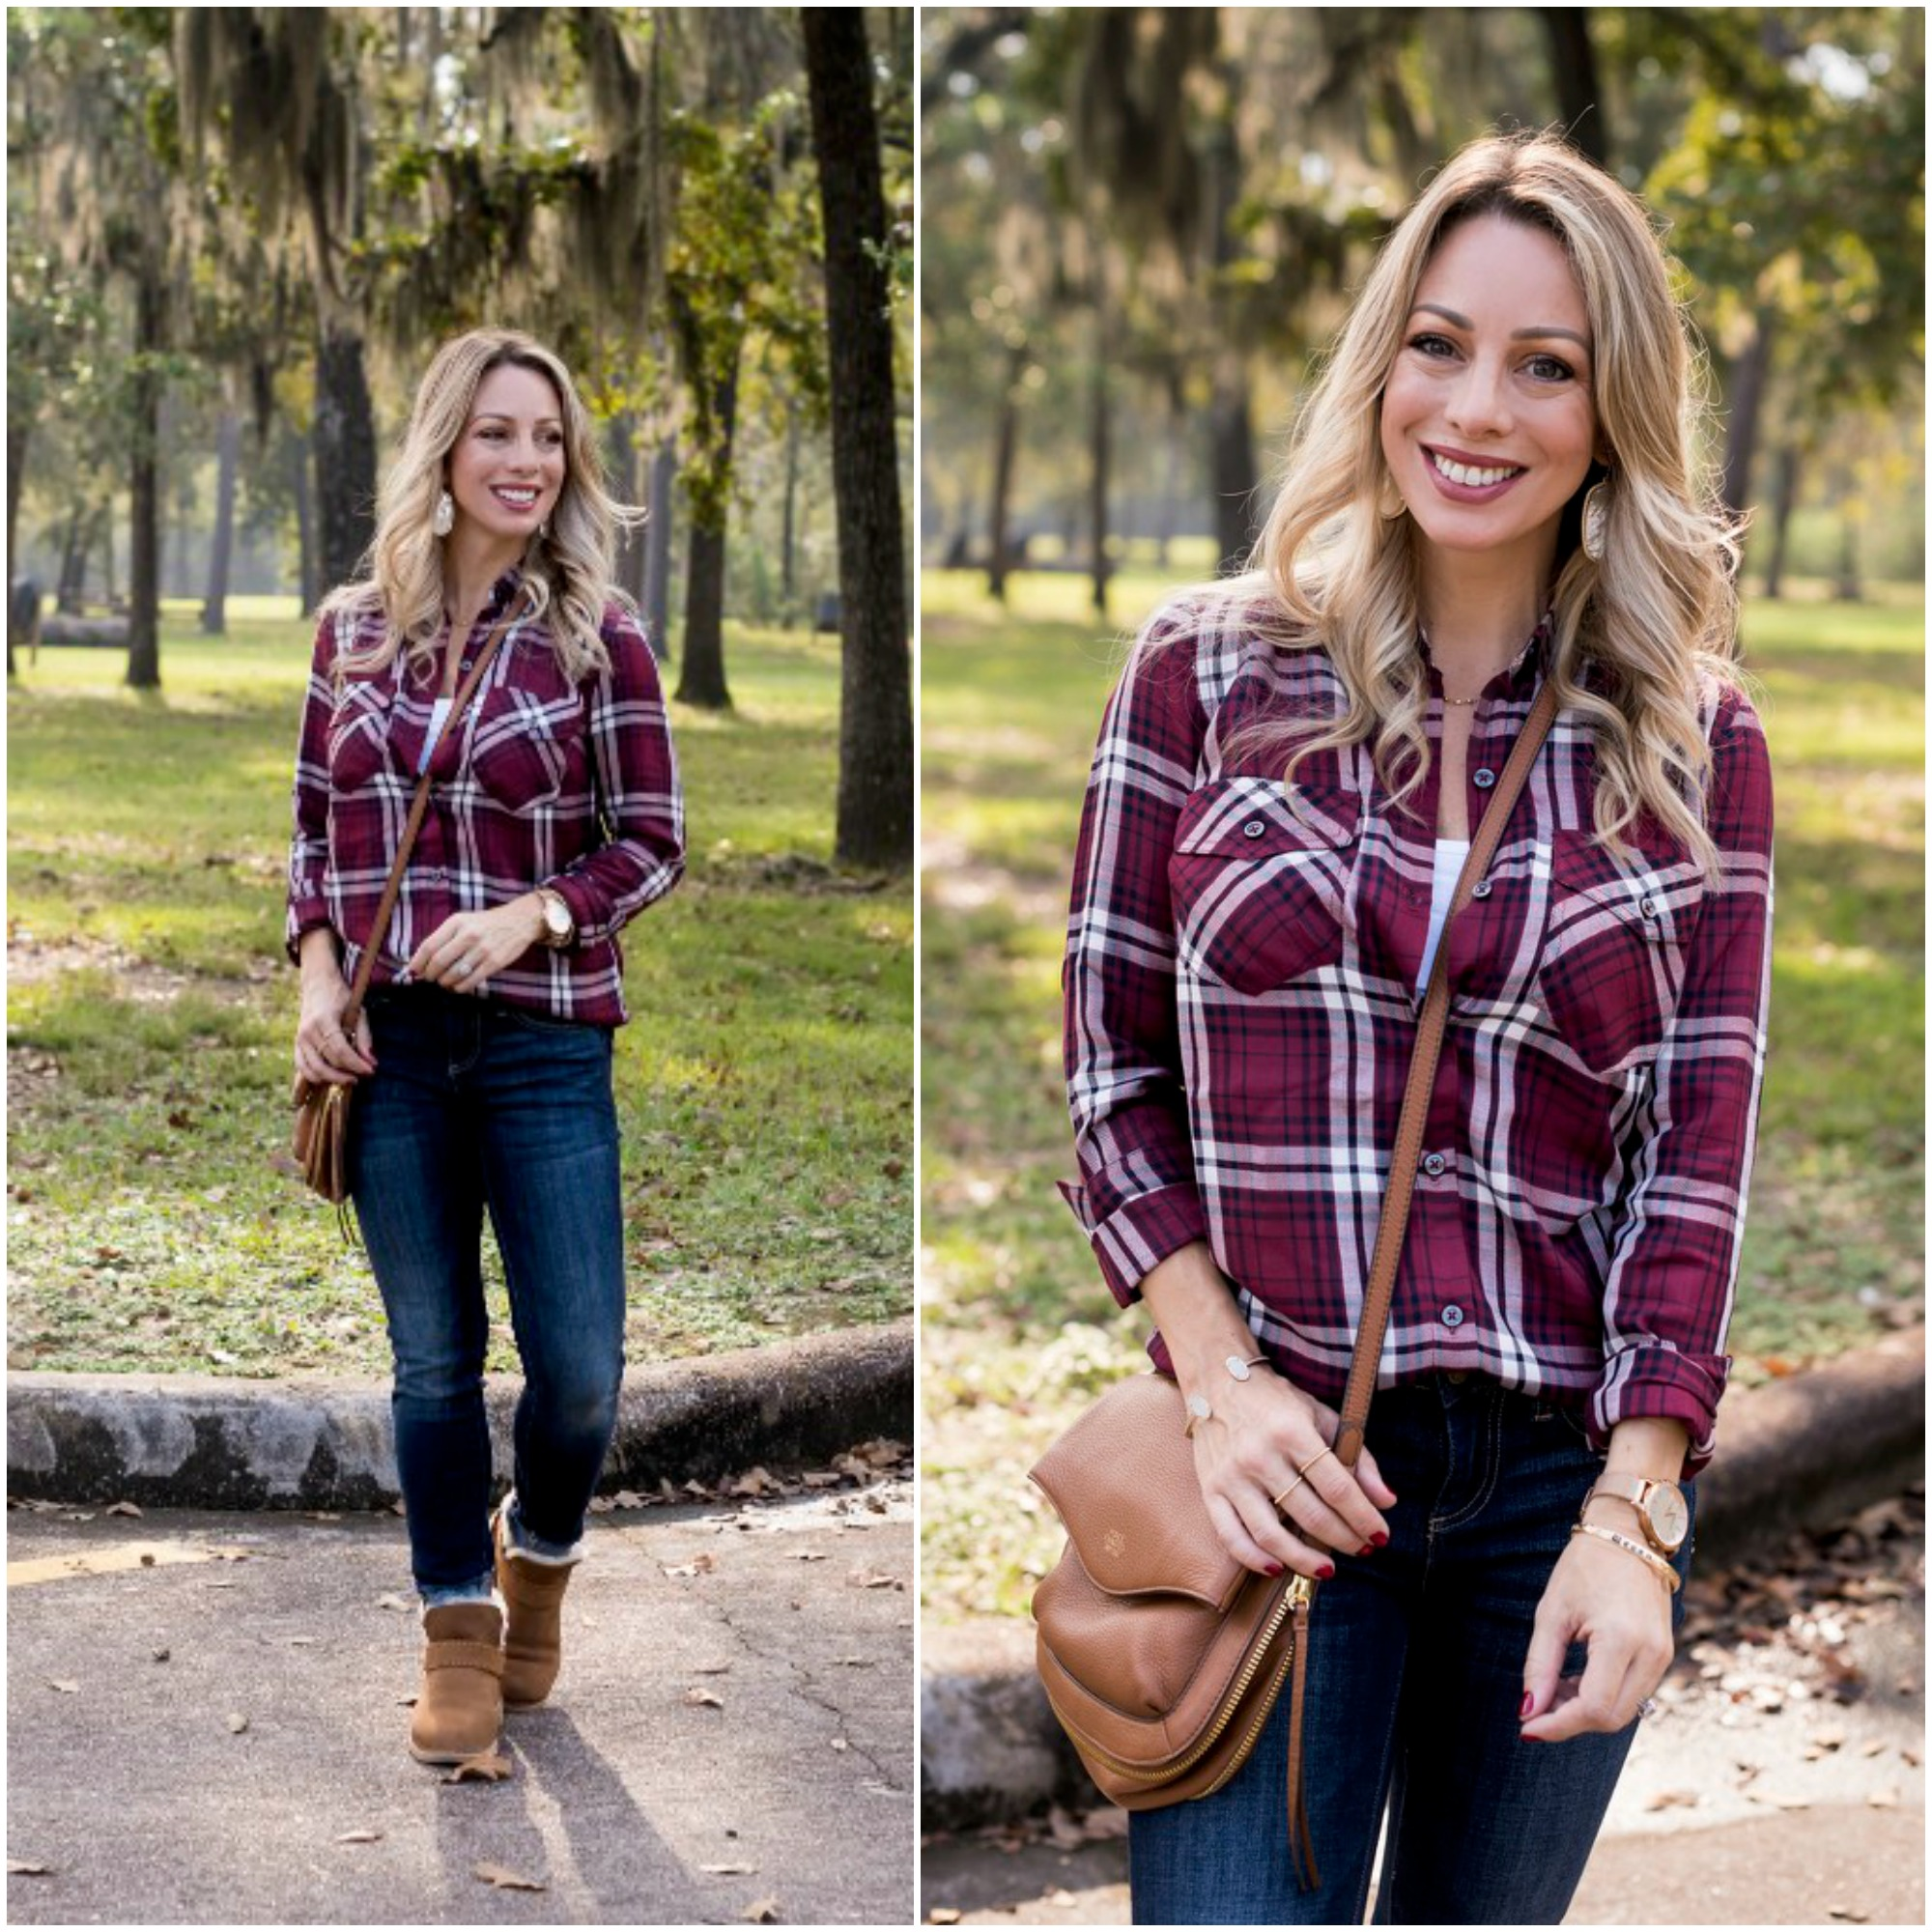 Fall outfit - plaid top and jeans with booties